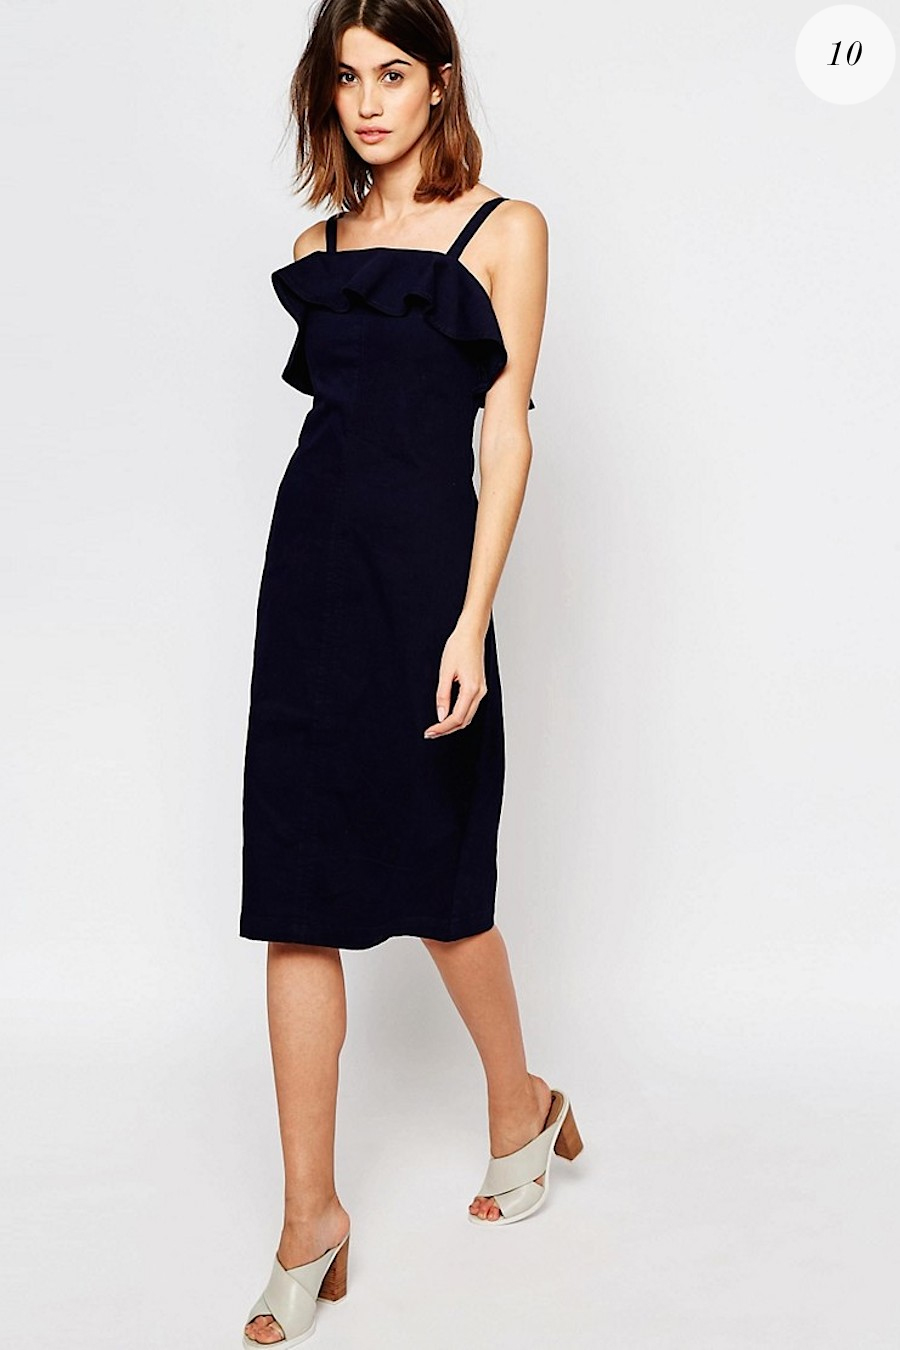 Wedding guest dresses fash-n-chips.com 10